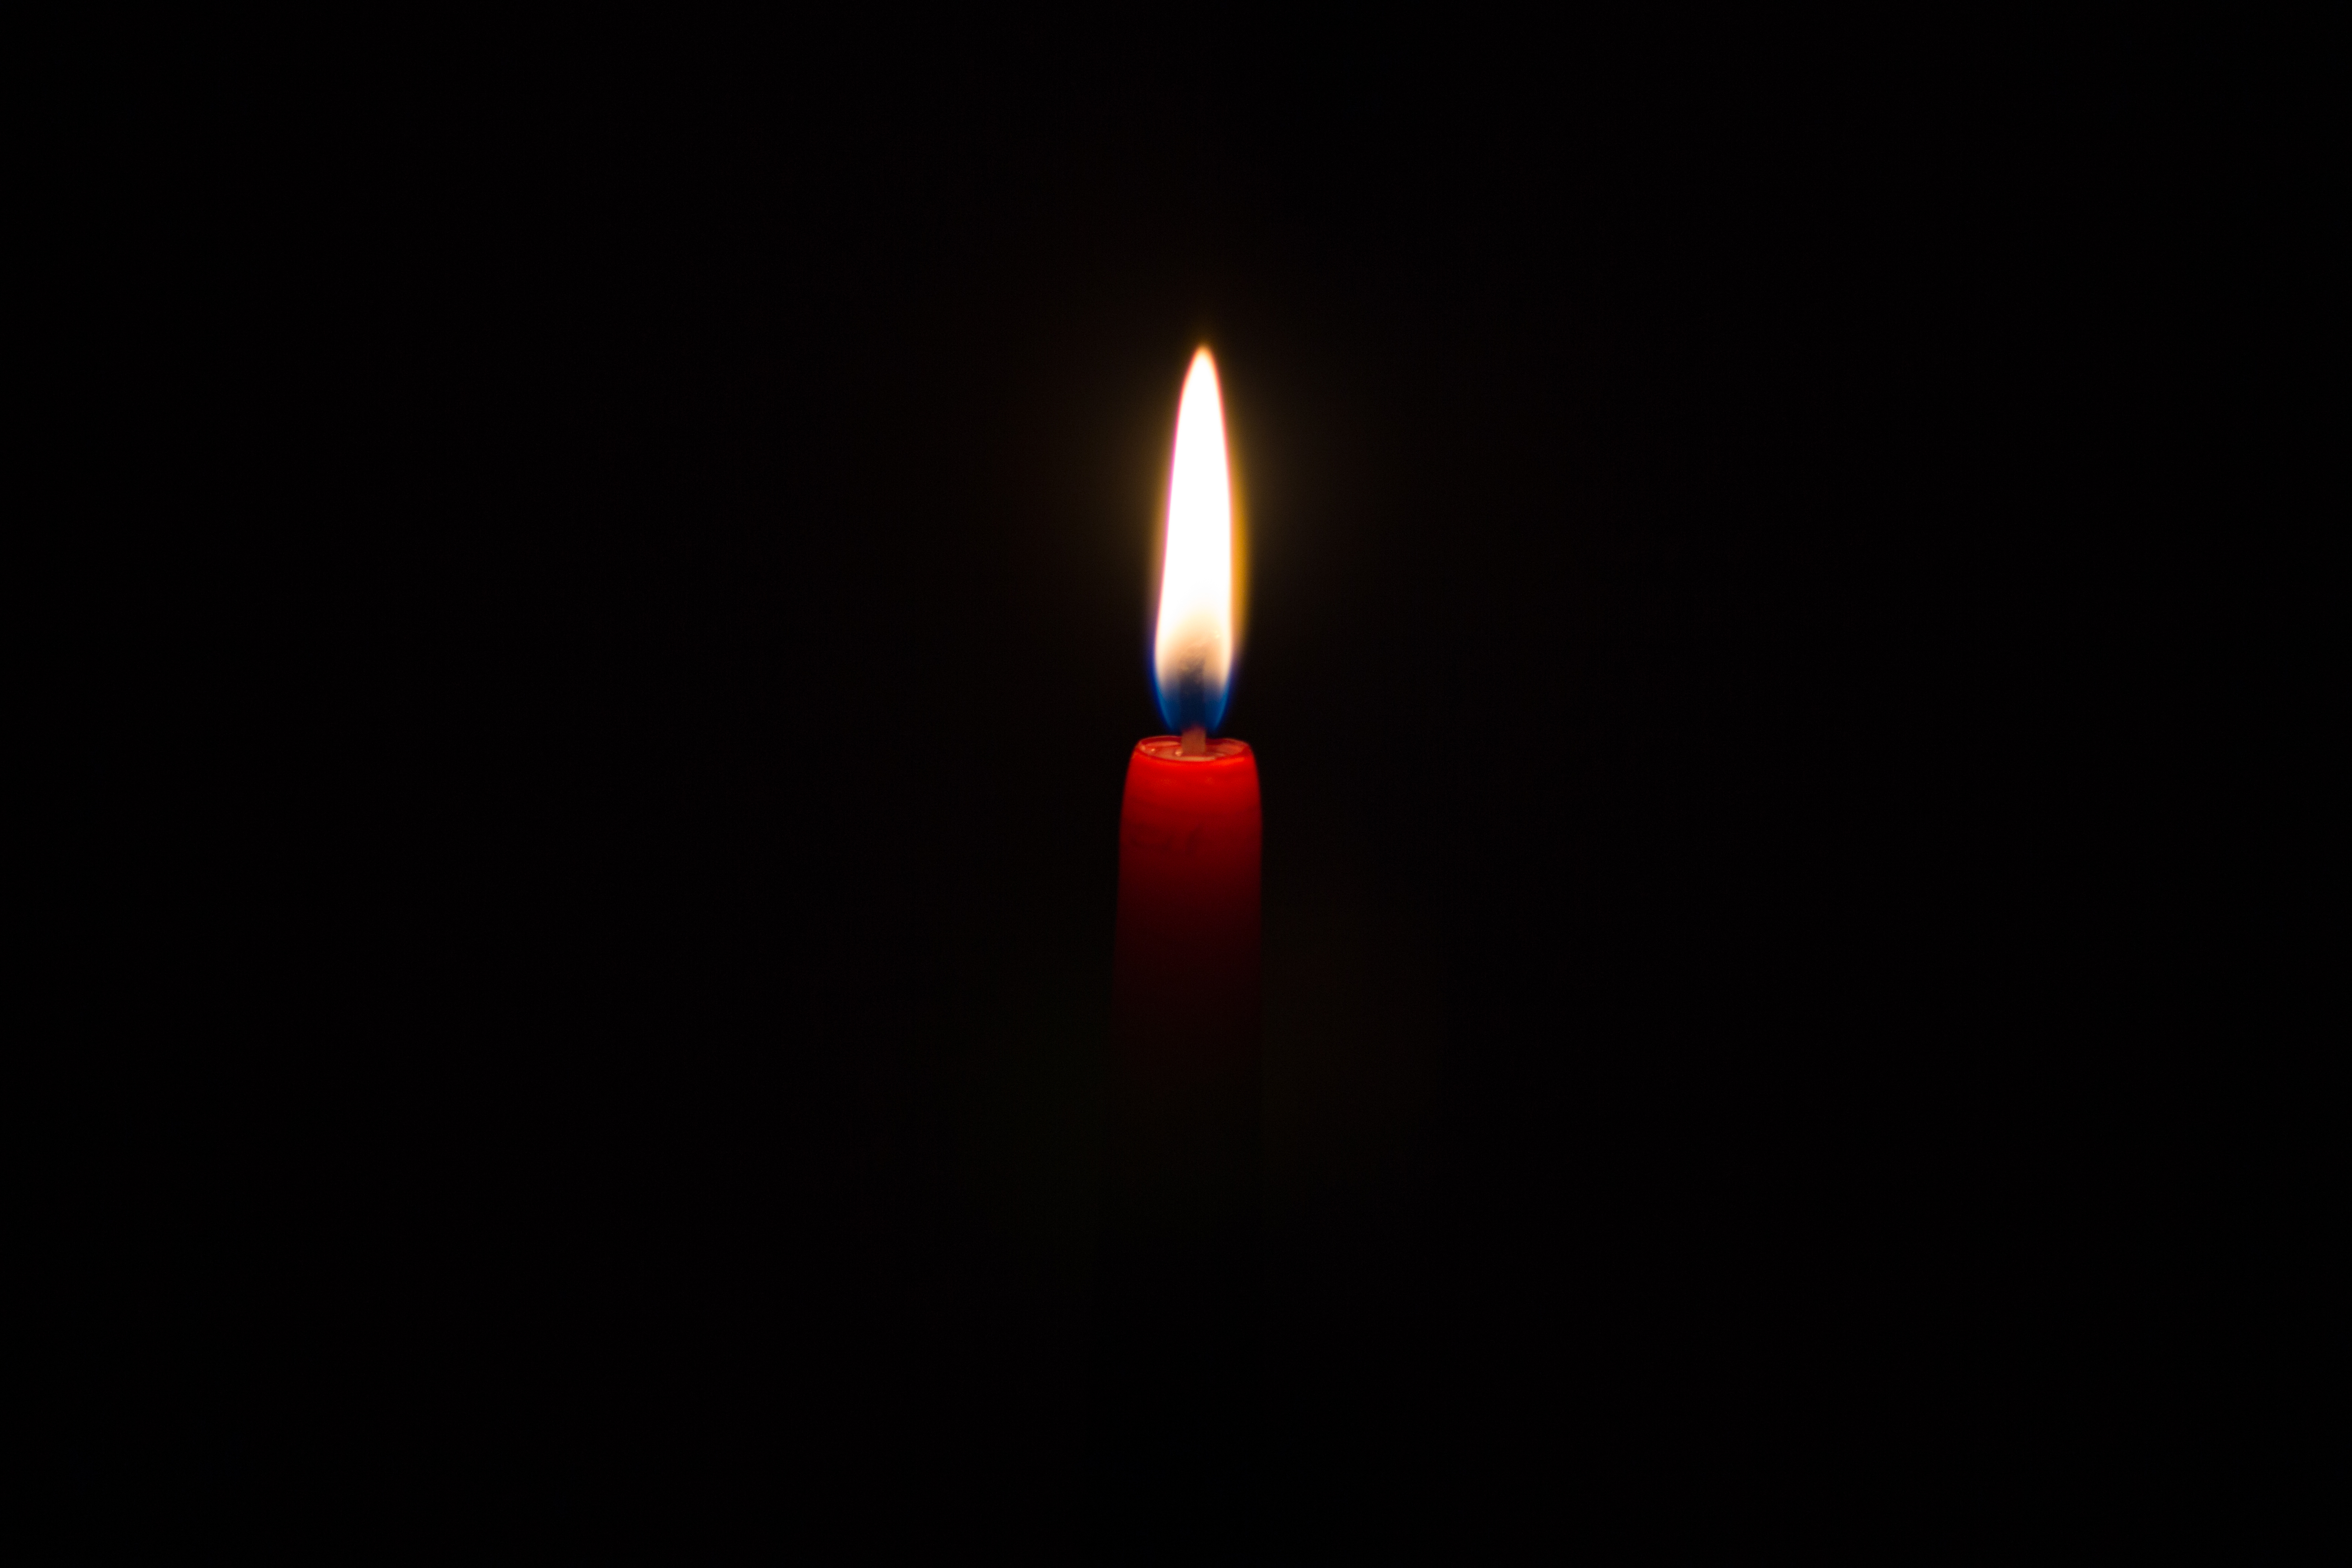 146926 download wallpaper Flame, Minimalism, Dark Background, Candle, Wax screensavers and pictures for free